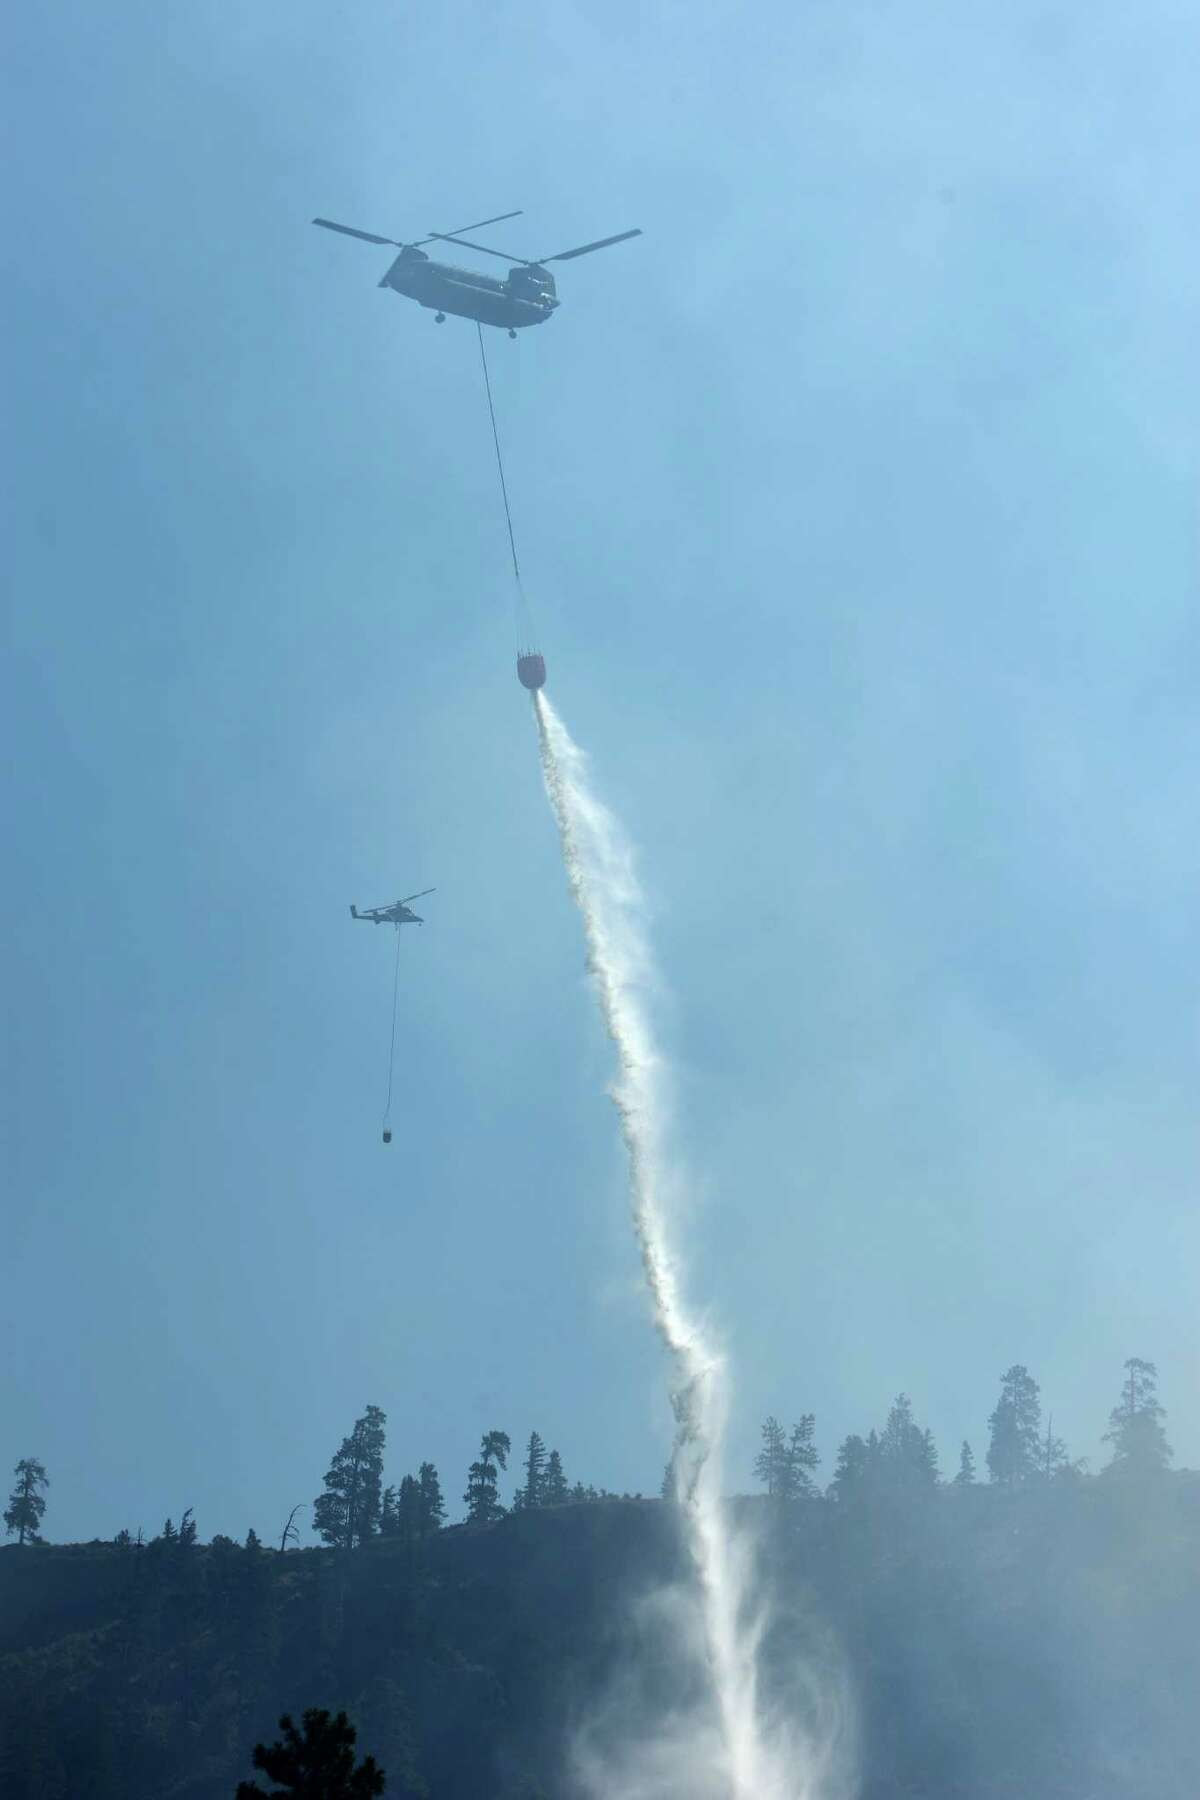 Helicopters drop water above Hidden Valley Ranch where fire crews worked to halt progression of the Taylor Bridge Fire on Thursday, August 16, 2012. The Taylor Bridge Fire has forced hundreds to evacuate and has burned dozens of homes.